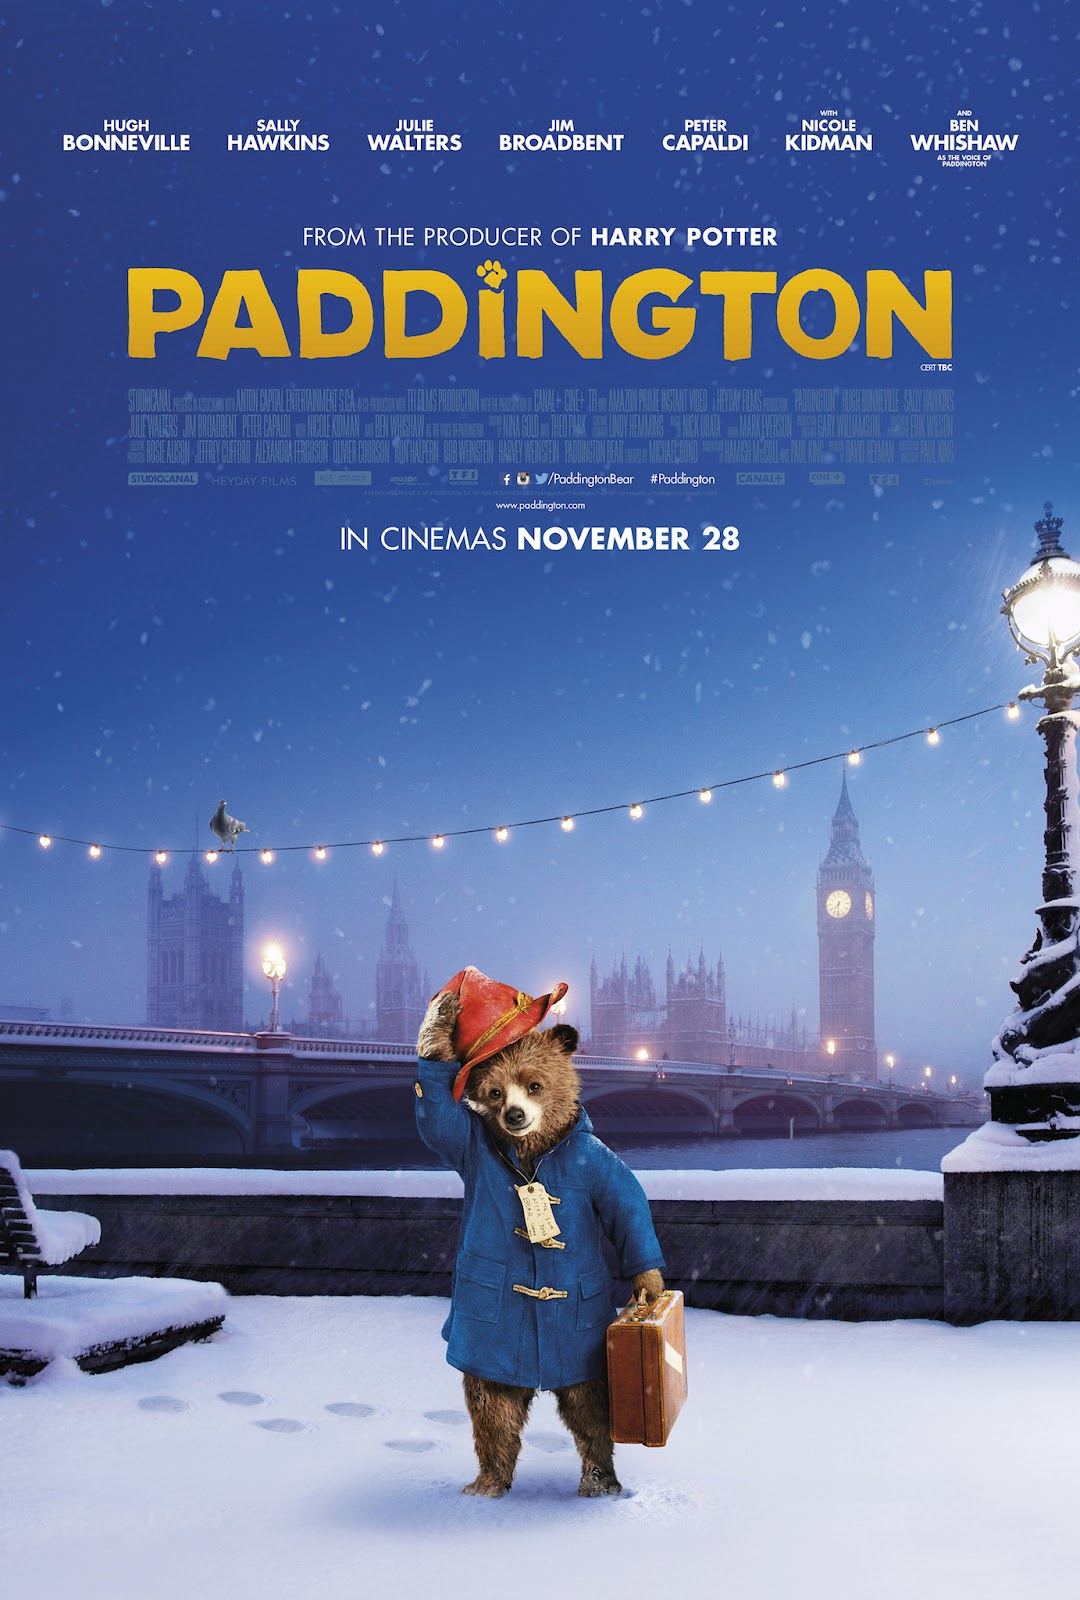 Paddington Film Poster